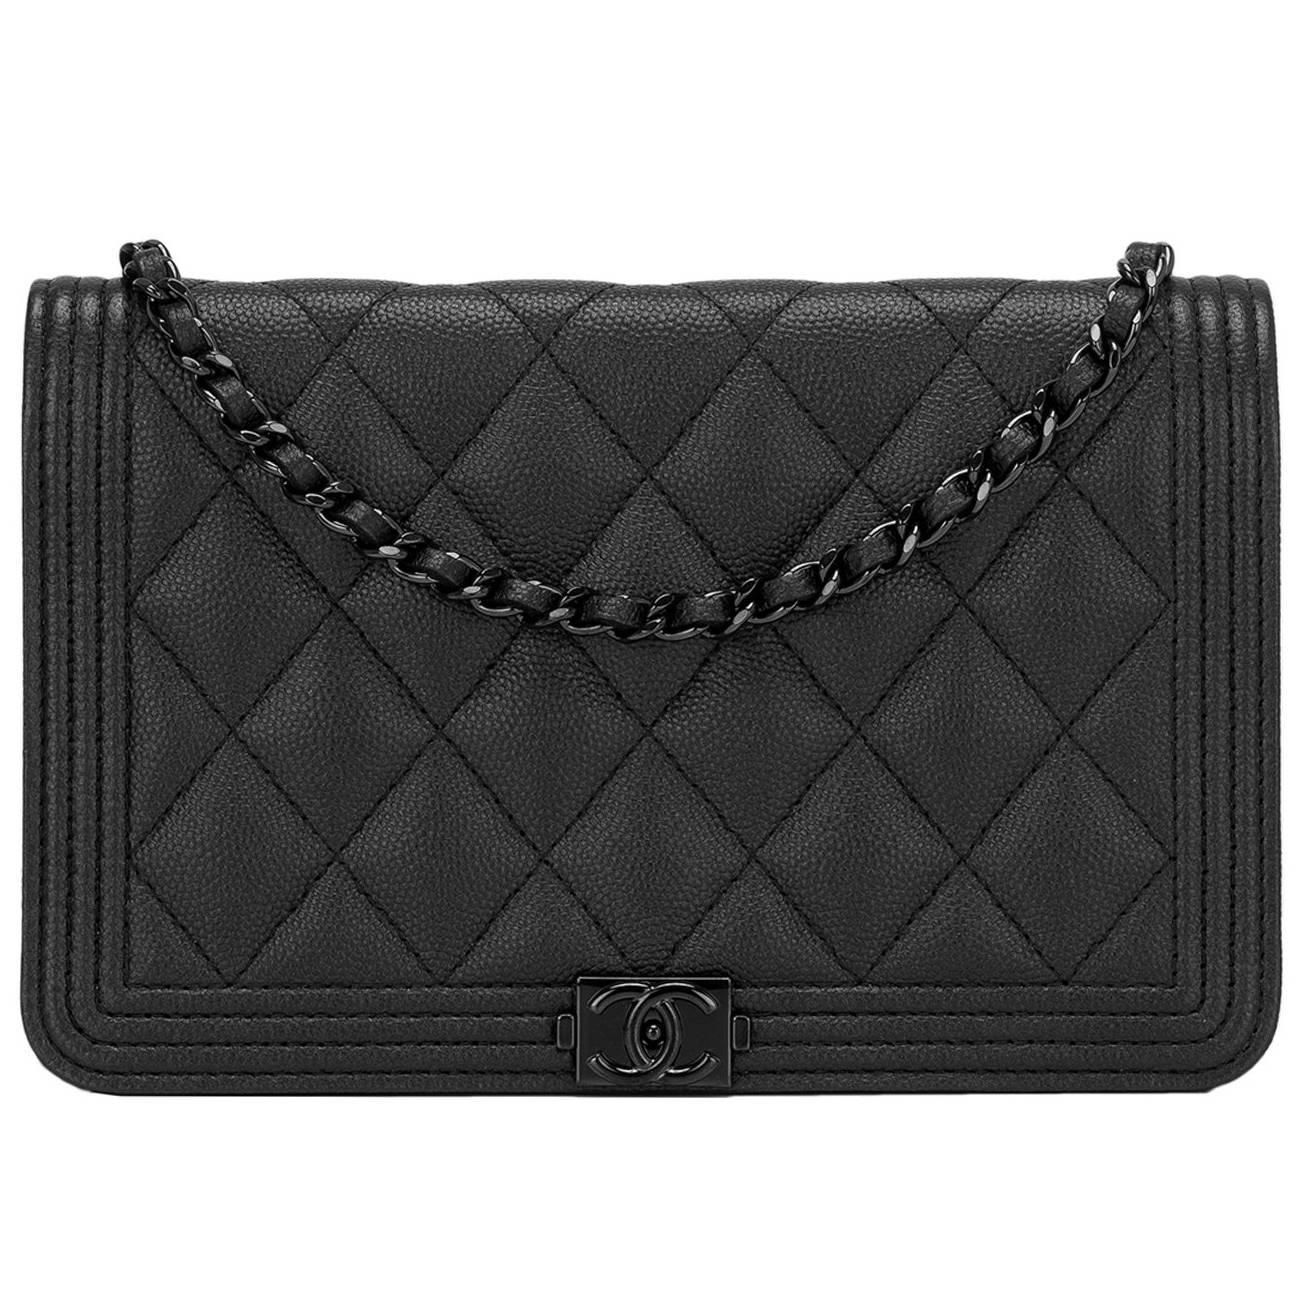 be5d90748573 Boy WOC in 2019 | styles' references | Chanel woc, Sac chanel, Chanel  handbags